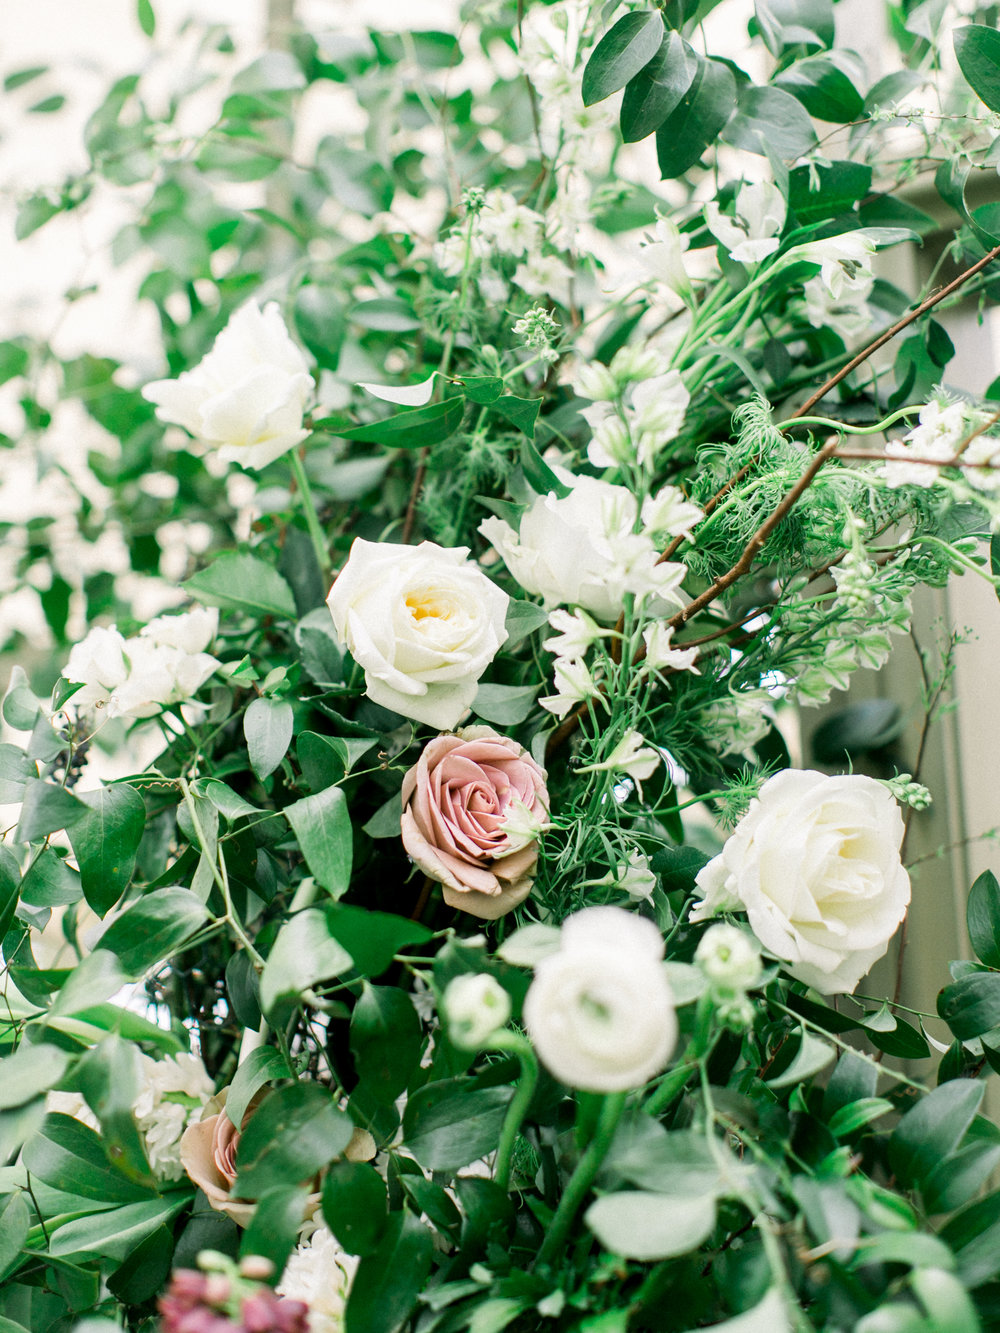 Everyday florals - Our online flower shop offers customers premium floral arrangements available for in-store pickup or delivery. Prefer to chat with us directly? Call us at (908) 232-2393 to place your order.